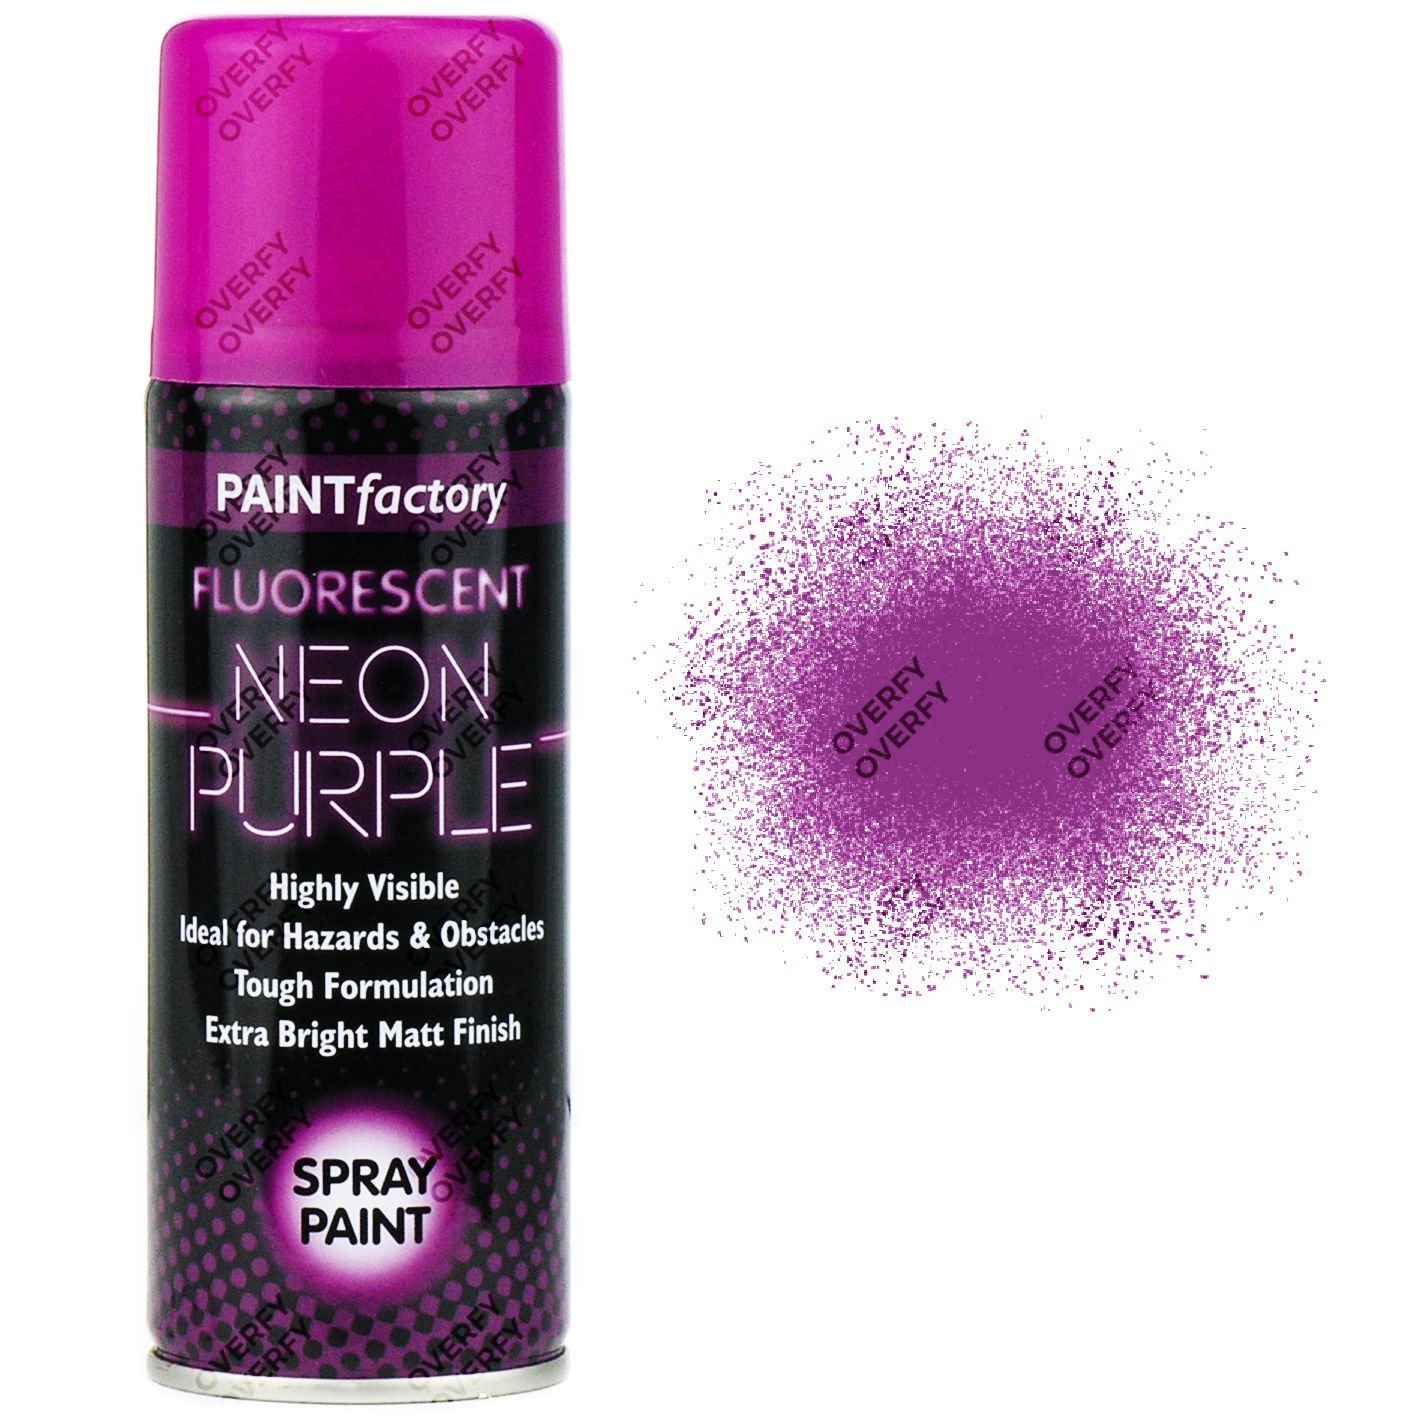 1-x-Fluorescent-Neon-Purple-Spray-Paint-Matt-200ml-Auto-Car-Creative-Paint-371848526853